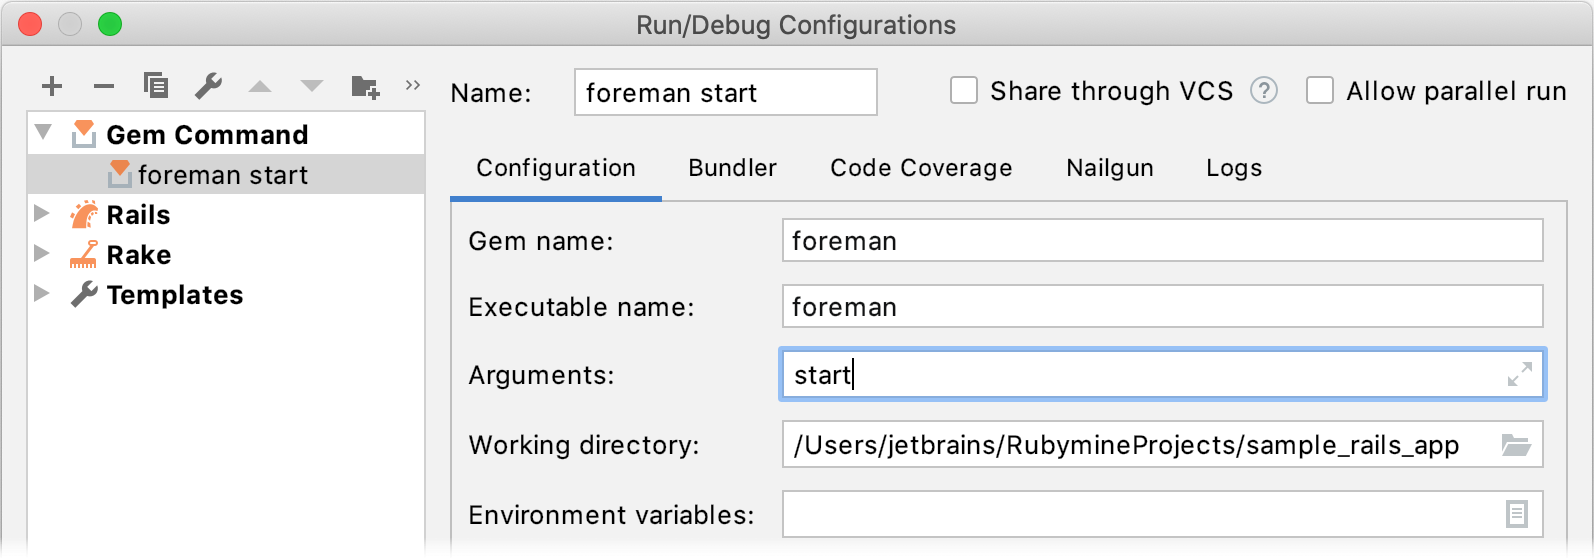 Foreman run/debug configuration